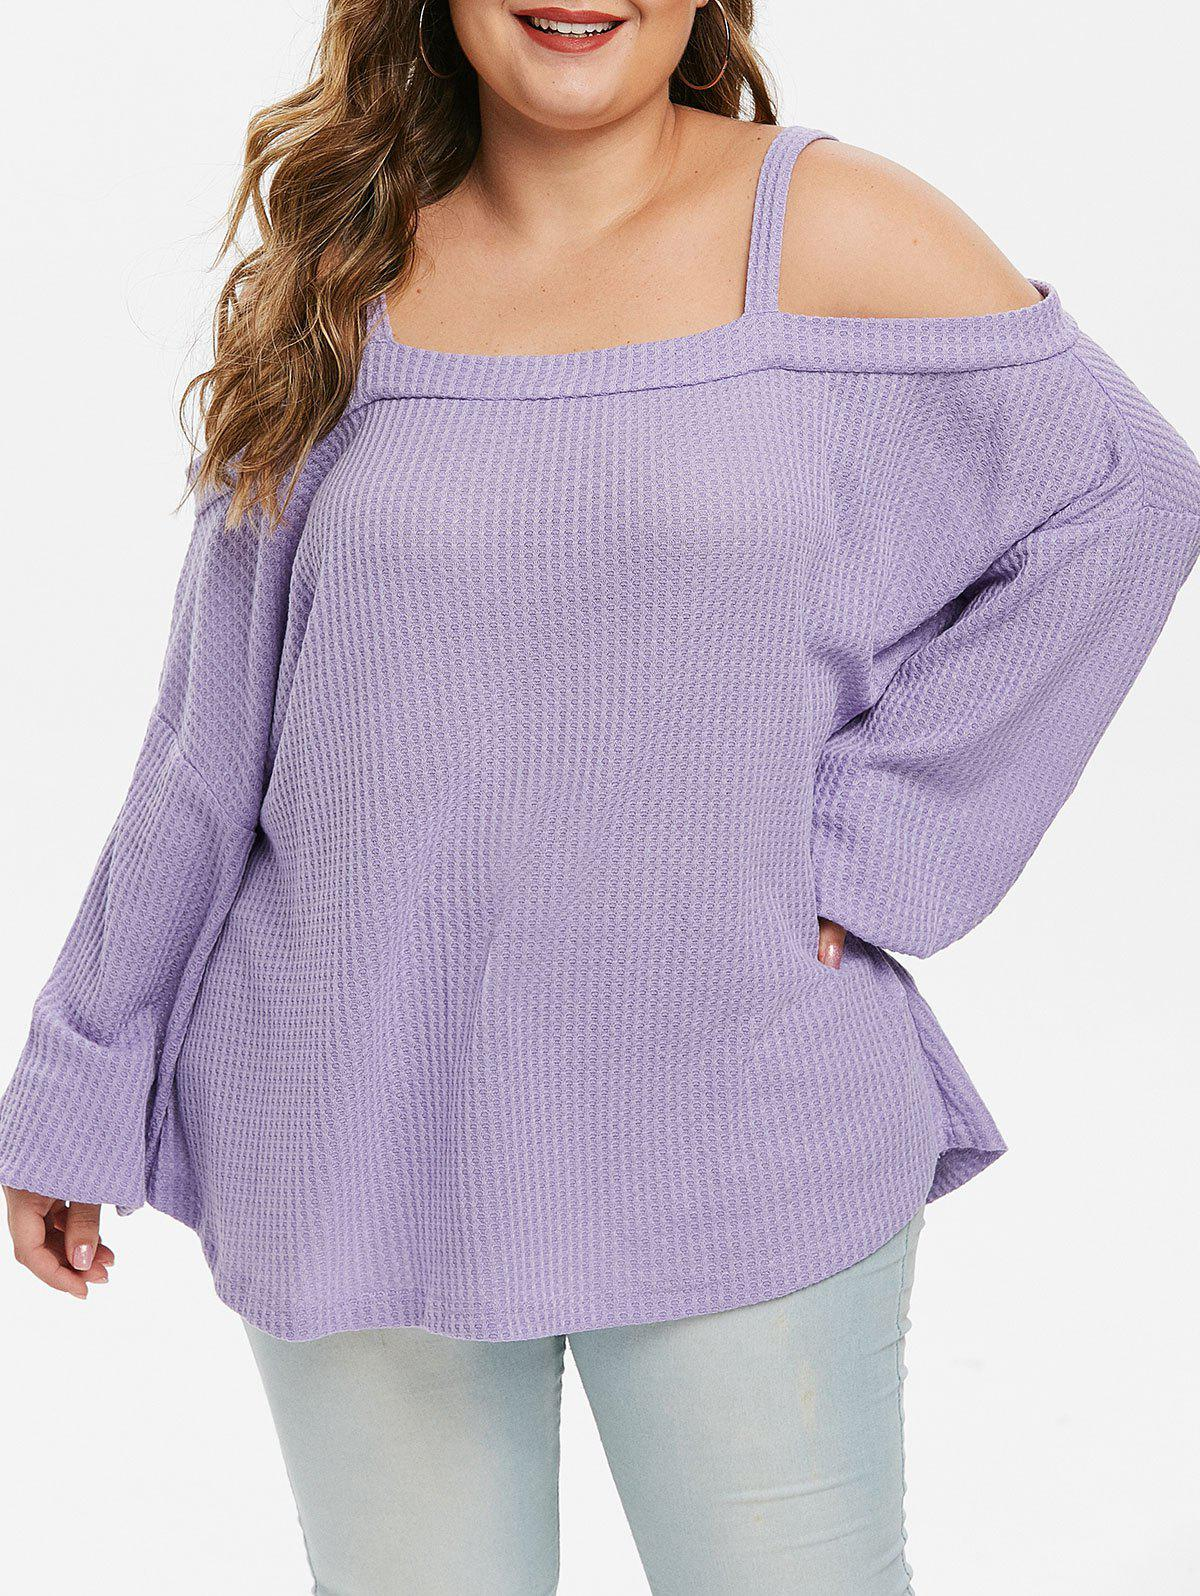 New Plus Size Lantern Sleeve Cold Shoulder Knit Top